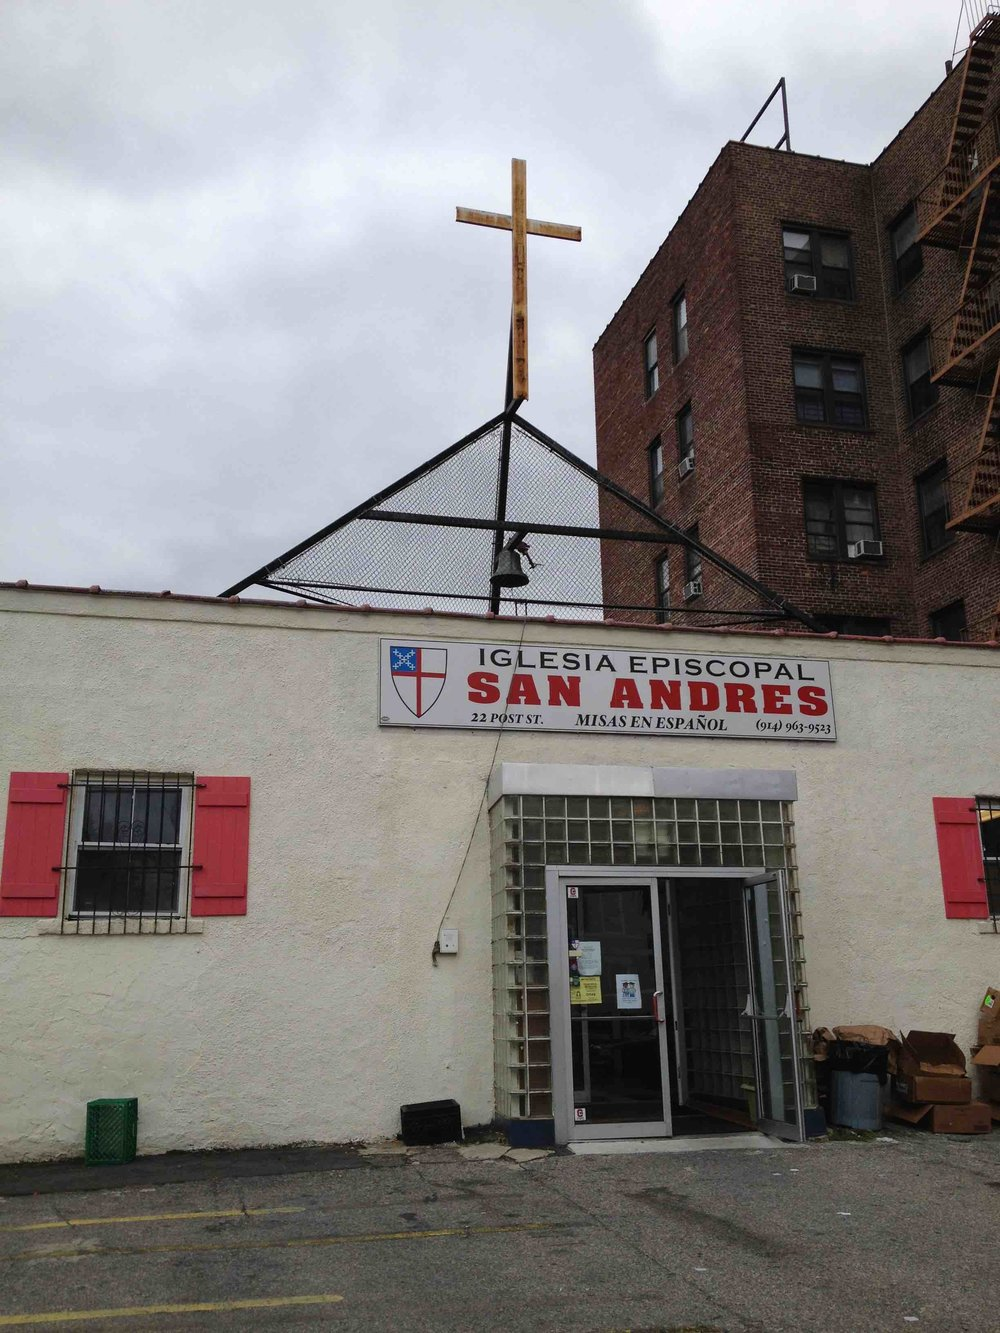 This small church I worked with in Yonkers, NY lives in a former gas station. Talk about creative use of space. The building is essentially one large room, which the church subdivides and alters over the course of a week to facilitate different needs. (Source: Rachel Quednau)